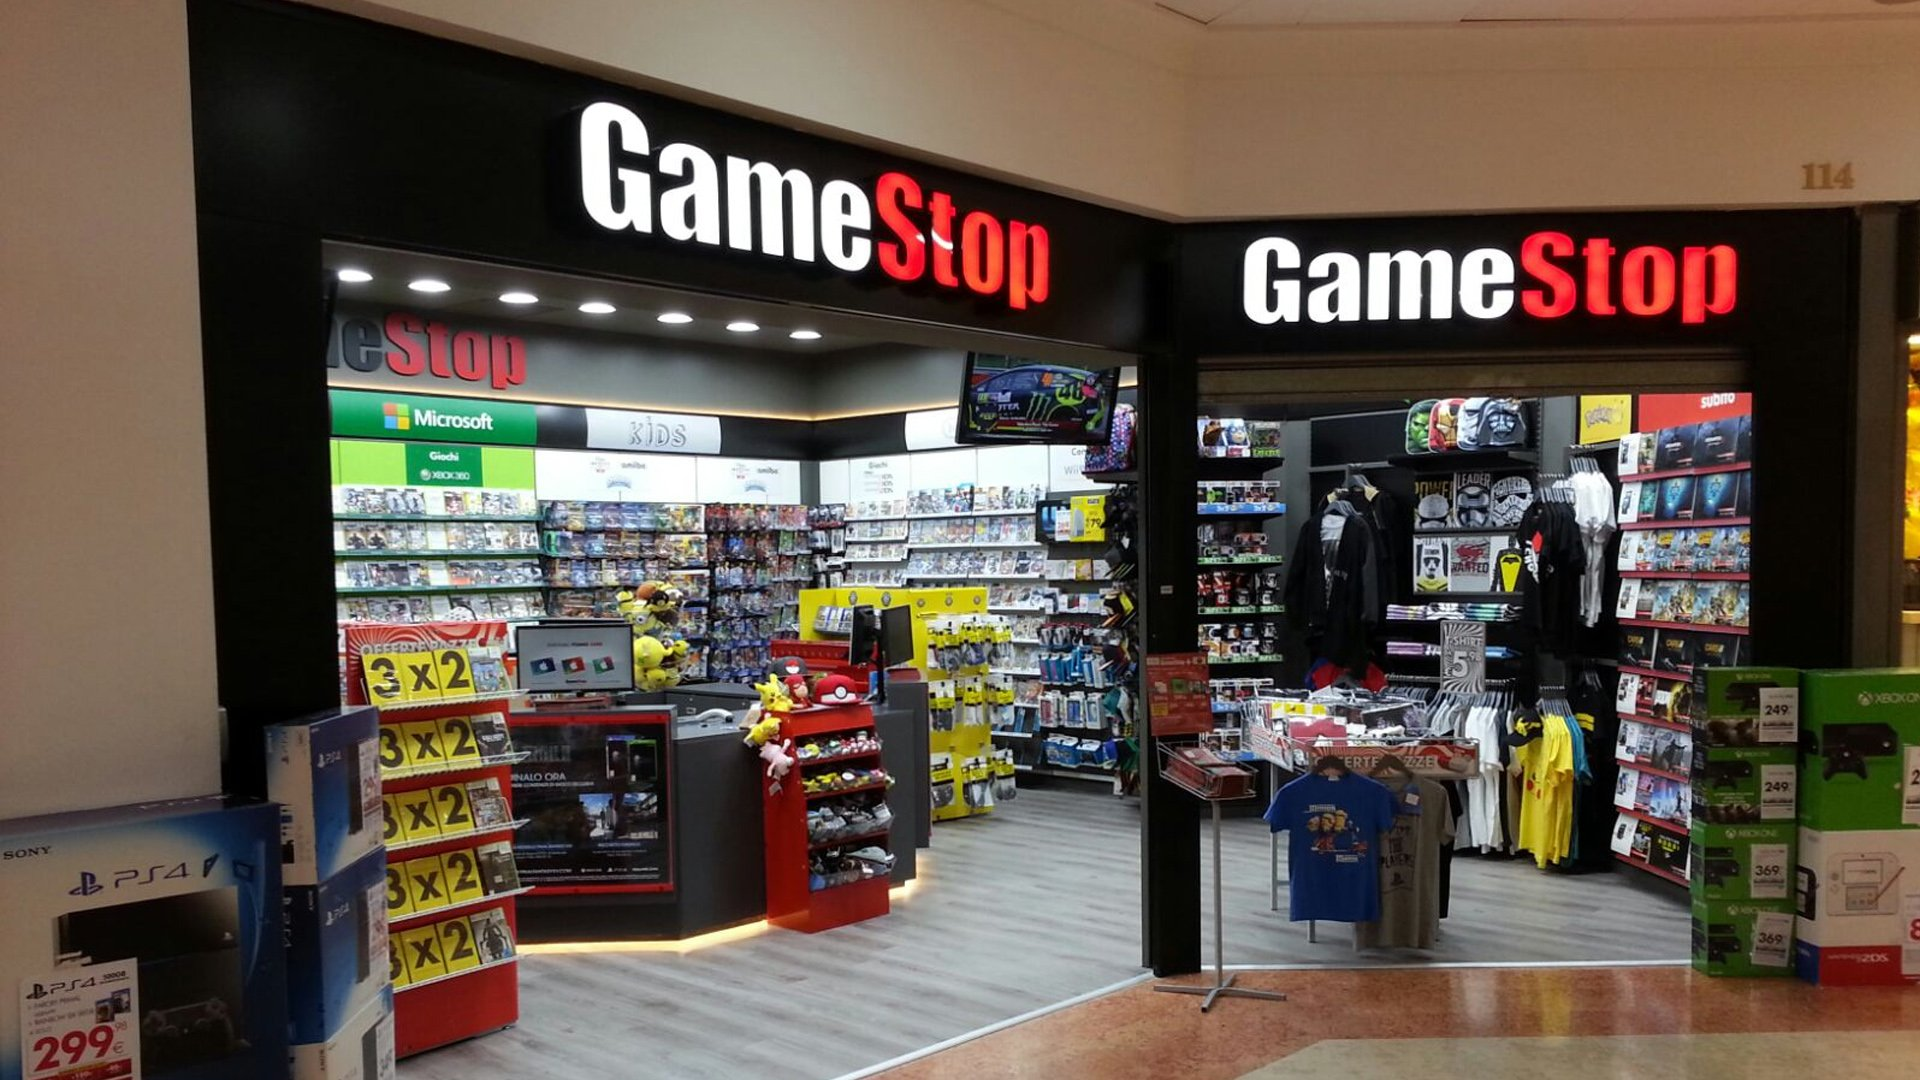 GameStop suspends used games lending program for now